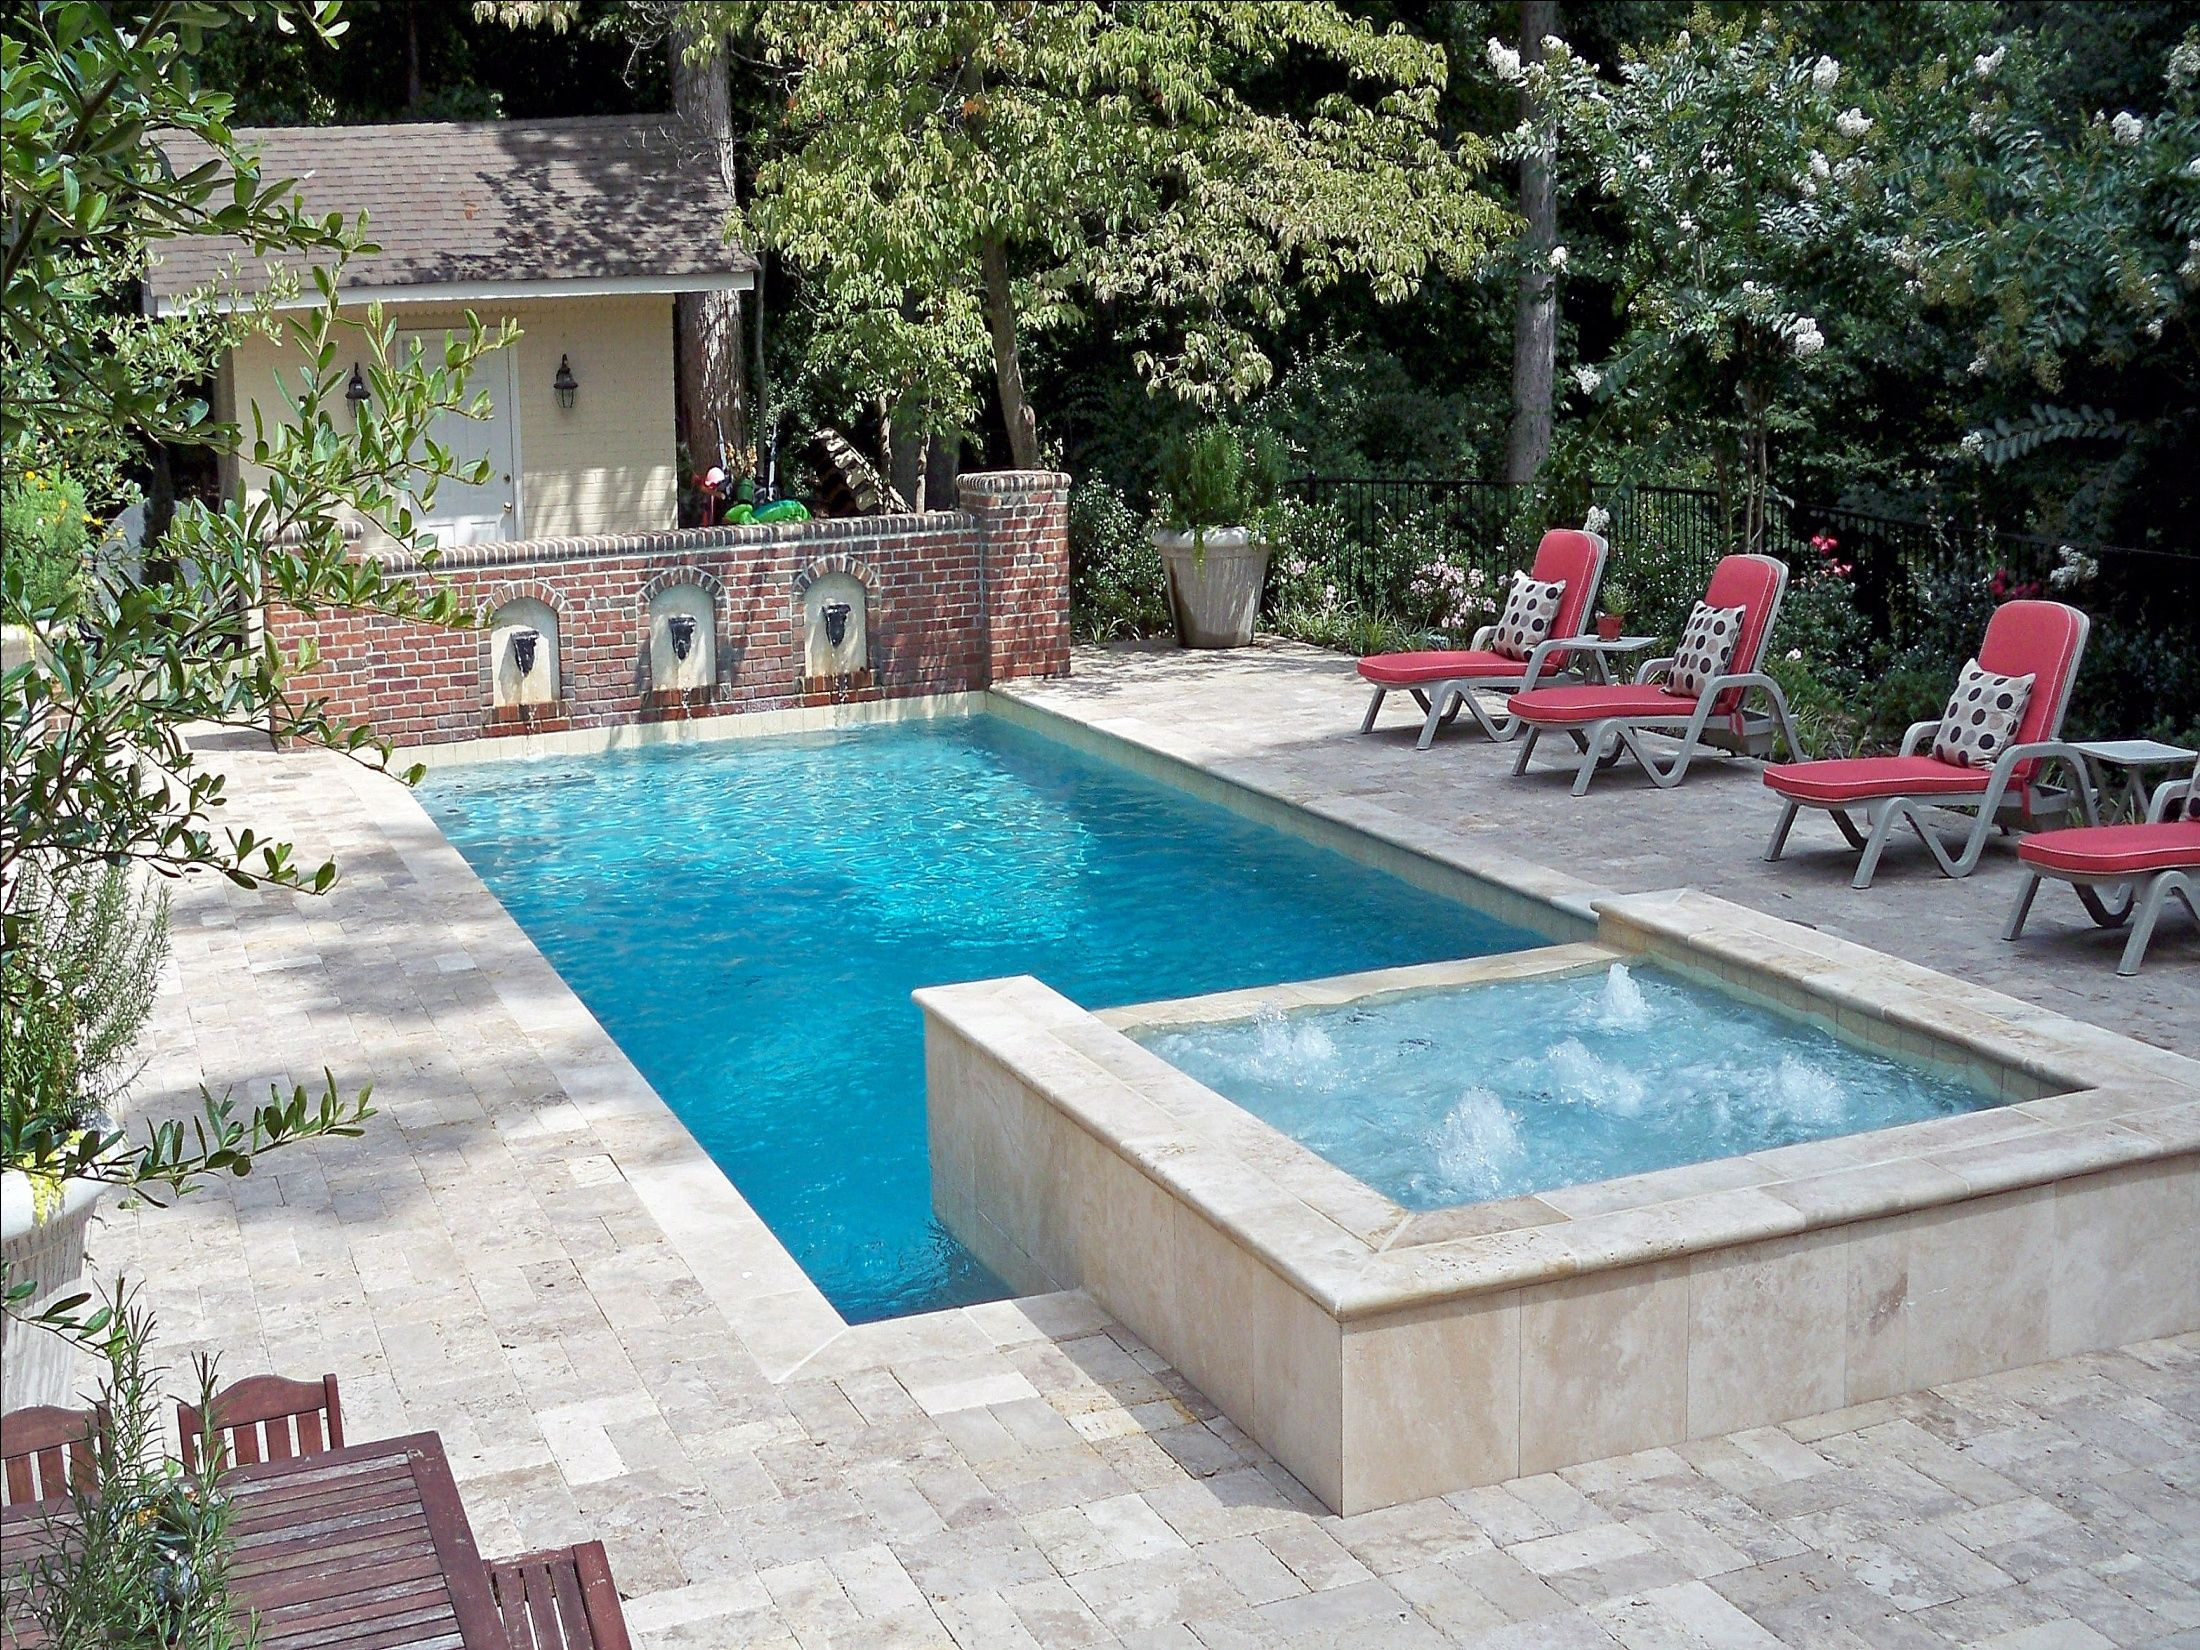 pool scuppers | Pool design & construction by Gress Inc ...